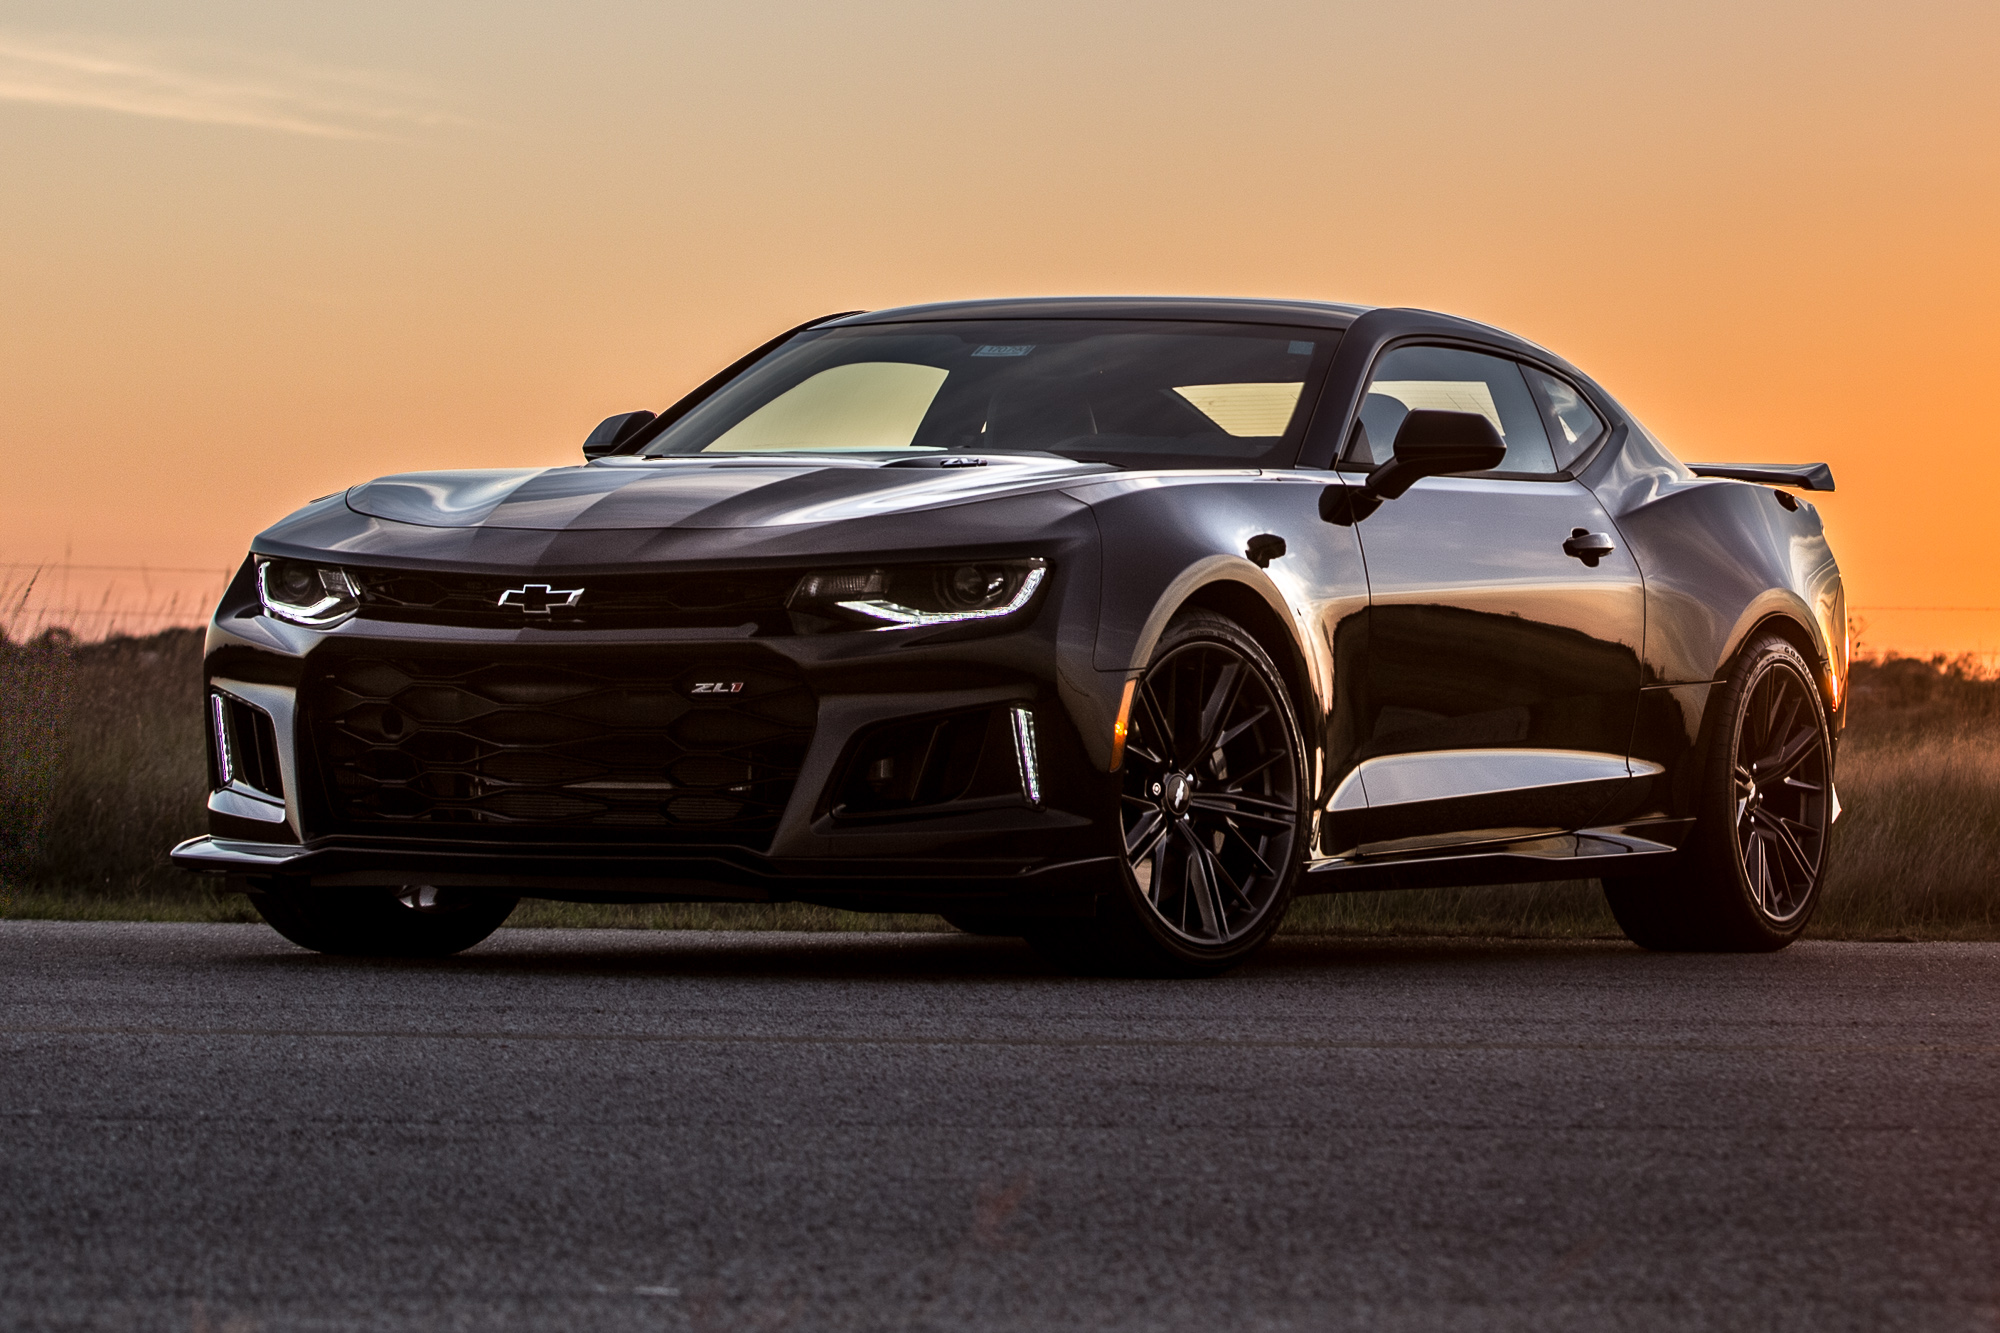 Uncategorized The Beast From West 2017 Camaro Zl1